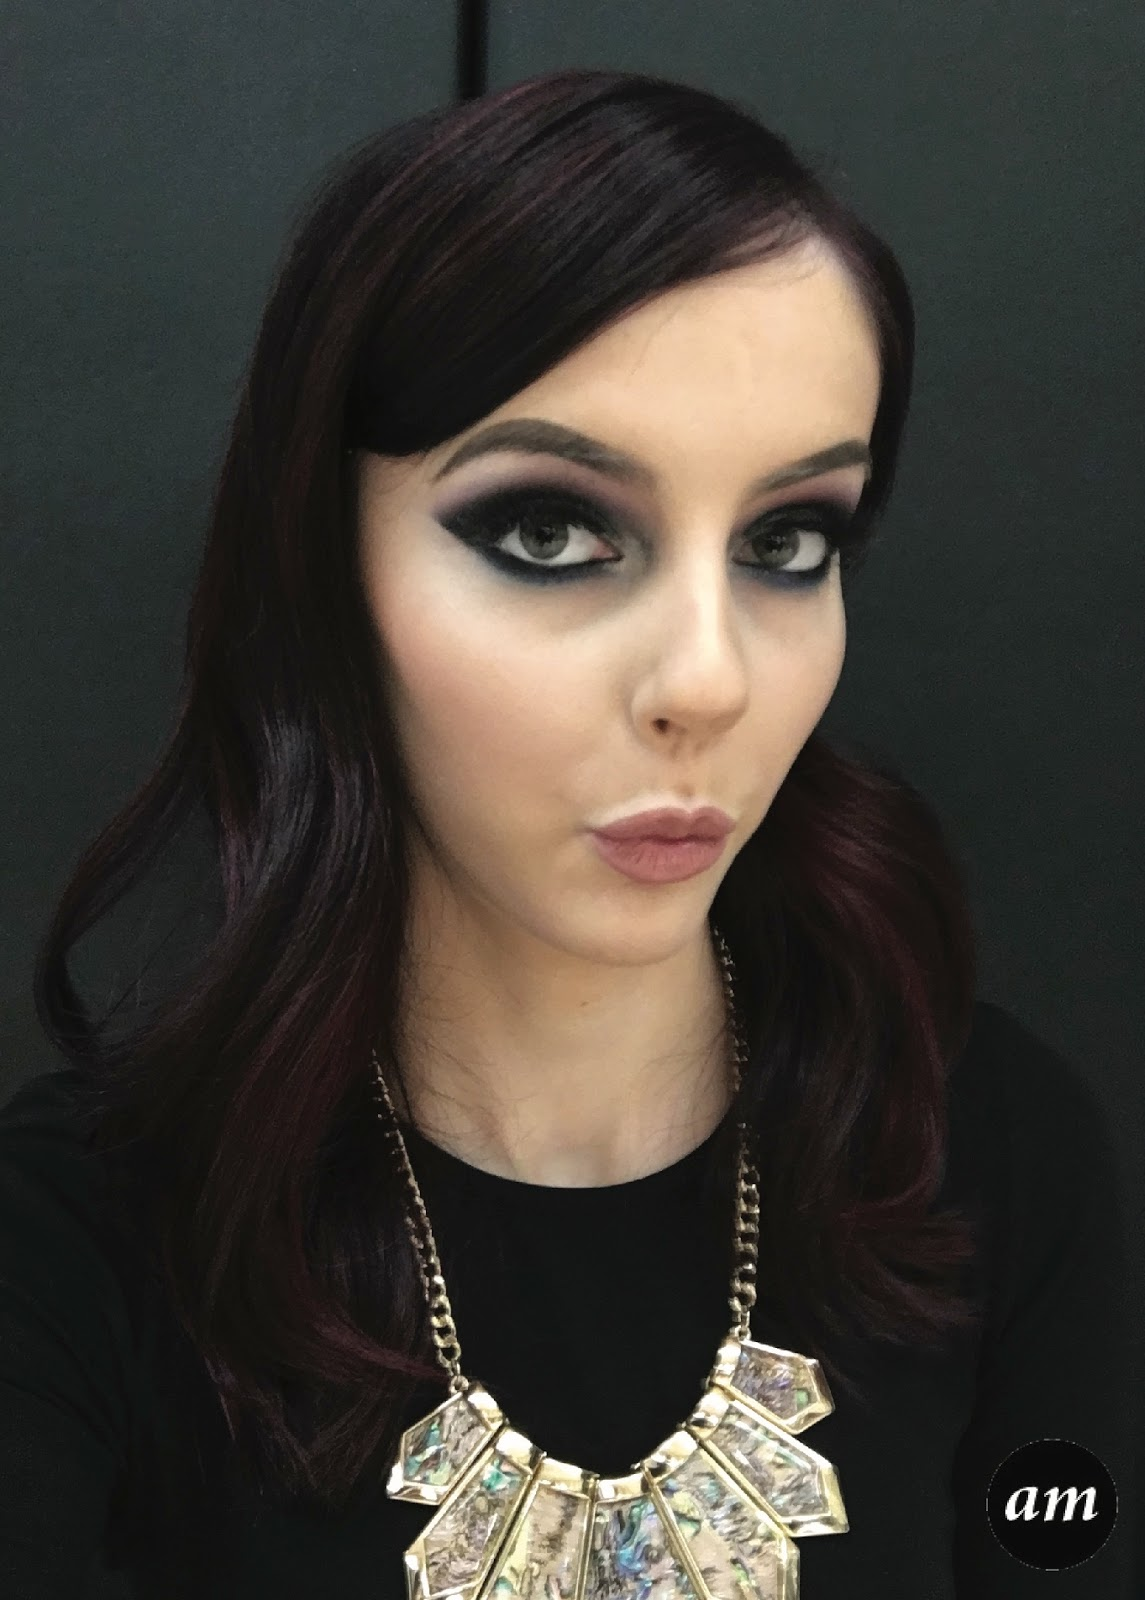 Amber mcniff beauty and fashion blog my illamasqua makeover as my 18 th birthday was approaching i made a trip to illamasqua in leeds to book in to have my makeup done for my big night out baditri Image collections